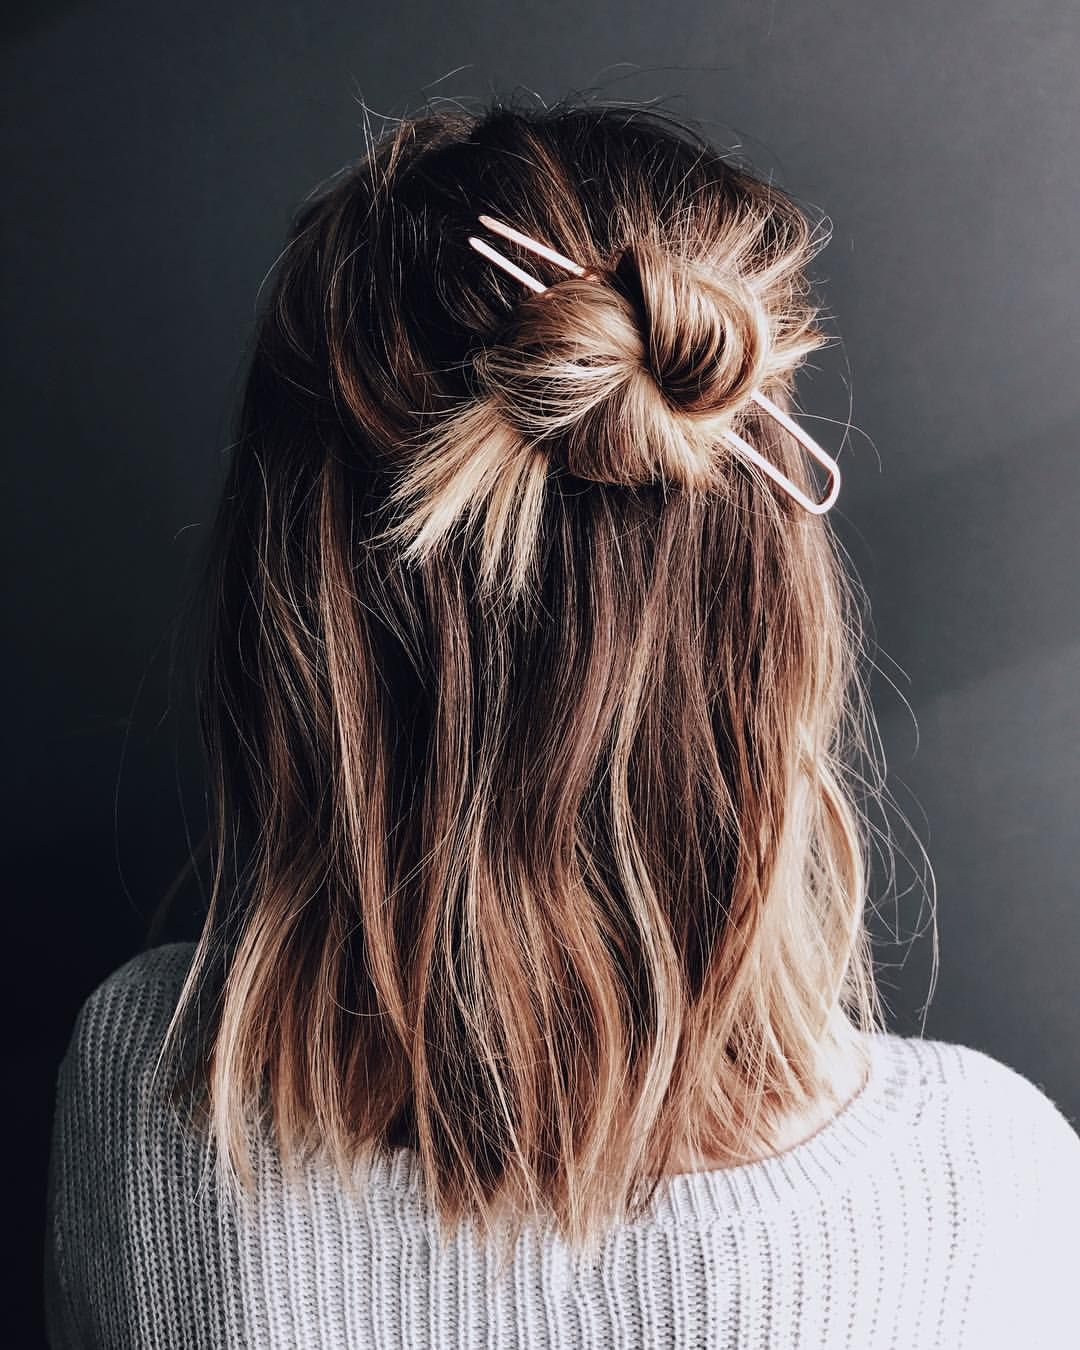 Pin by jelke goovaerts on hairstyles pinterest aspen mary and